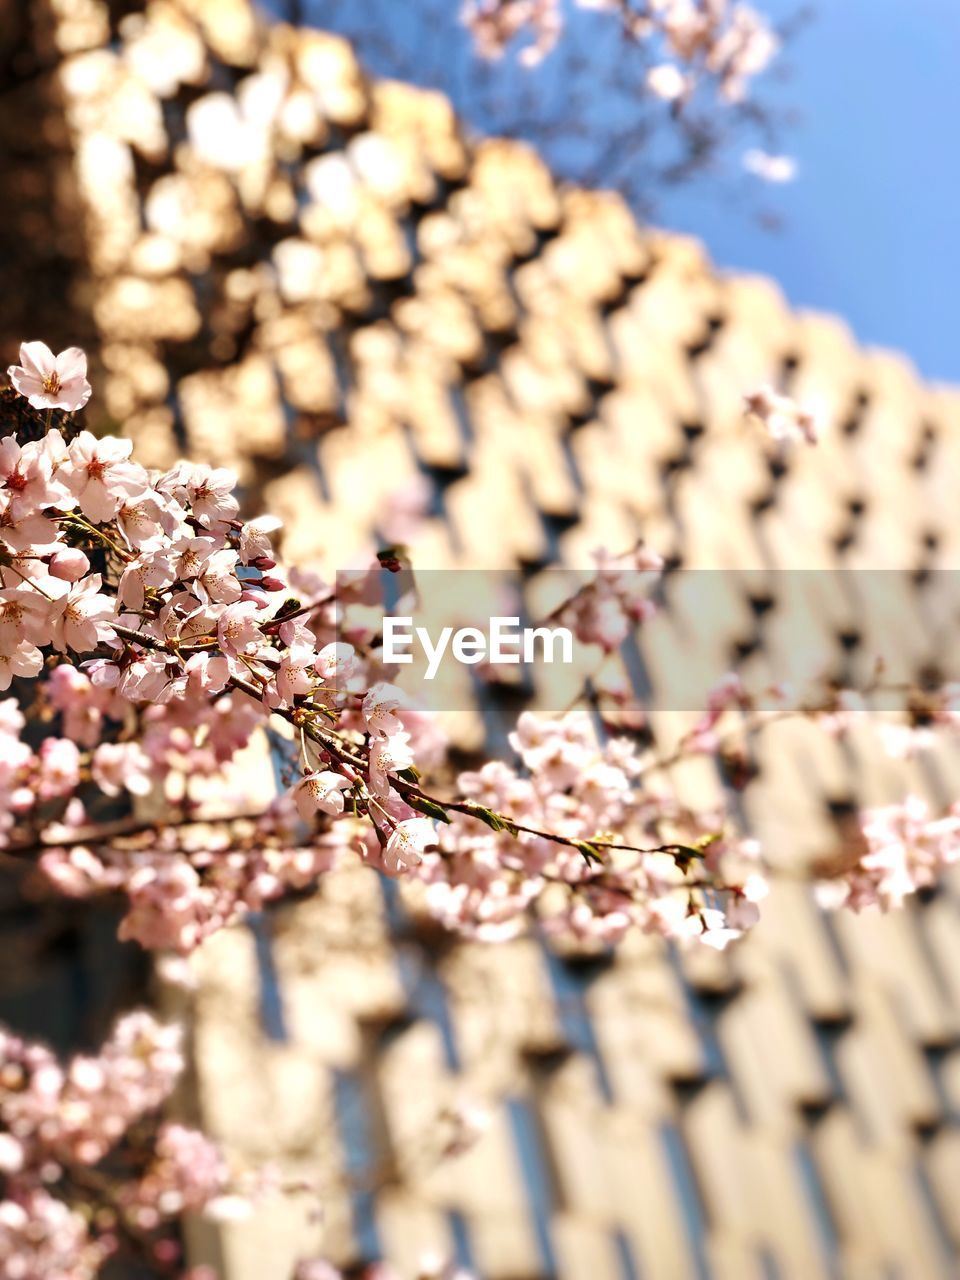 flower, plant, flowering plant, fragility, beauty in nature, growth, freshness, selective focus, nature, vulnerability, springtime, close-up, day, no people, blossom, sunlight, tree, branch, cherry blossom, outdoors, flower head, cherry tree, spring